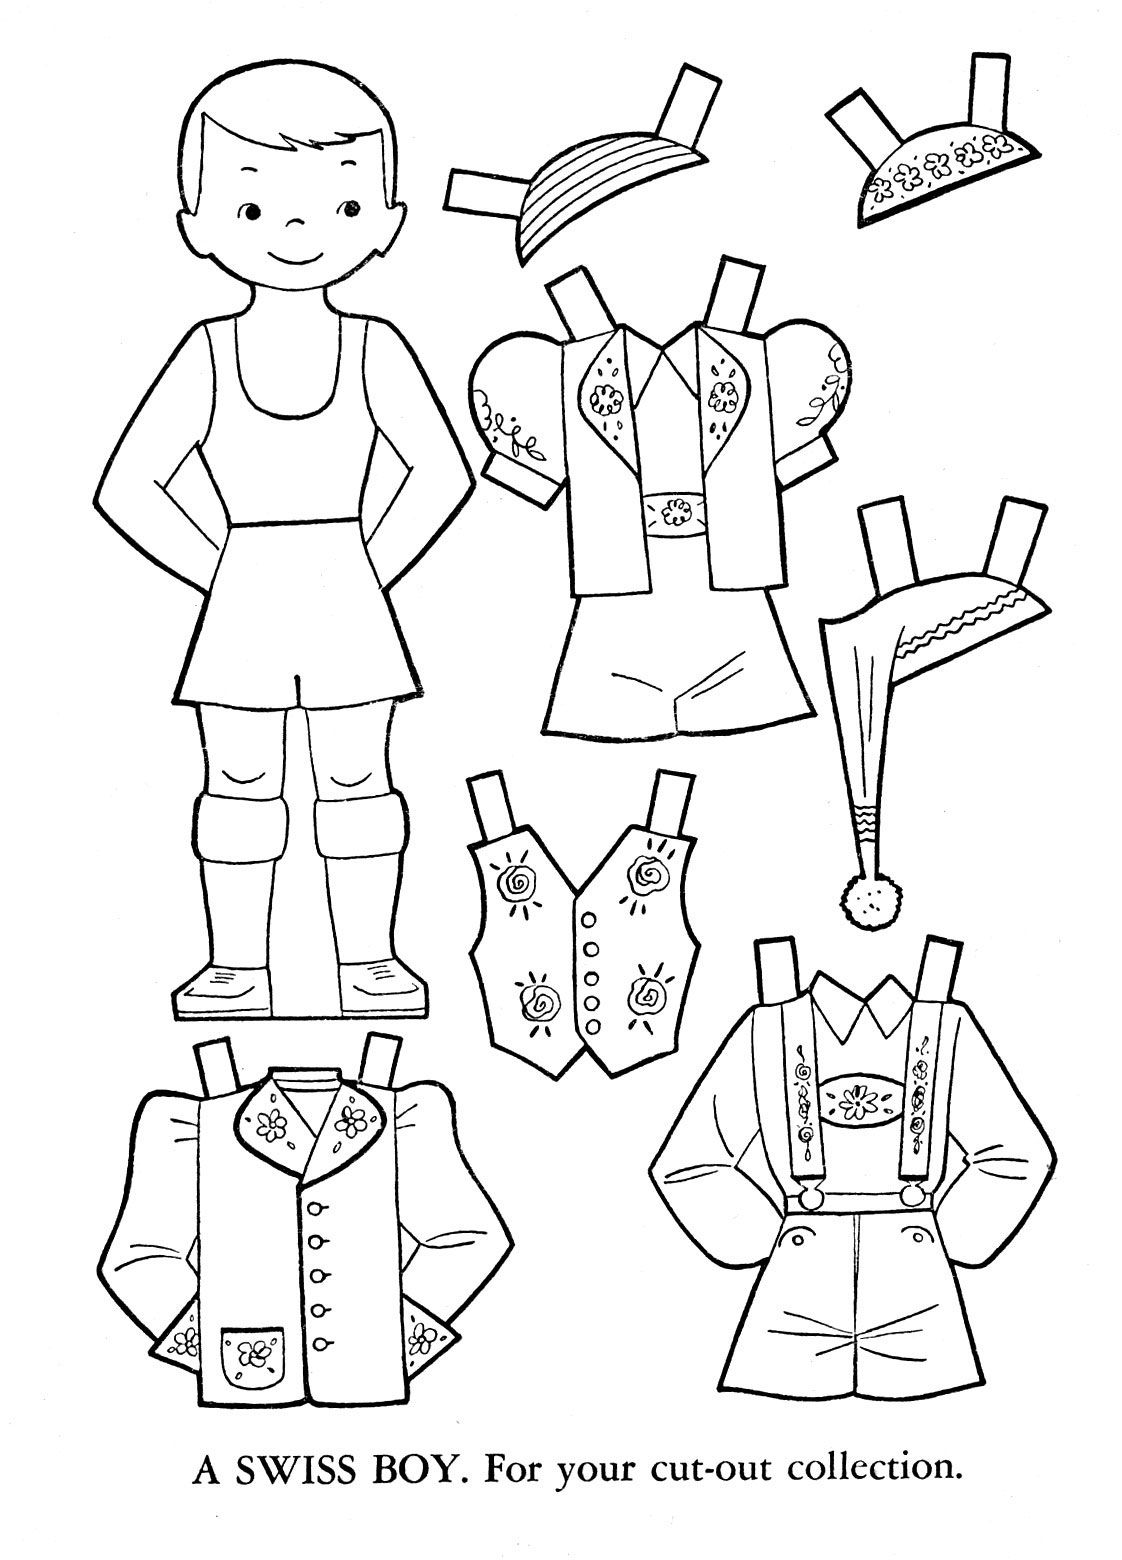 dress up paper doll outlines of dress up dolls different colountries paper dress paper doll up